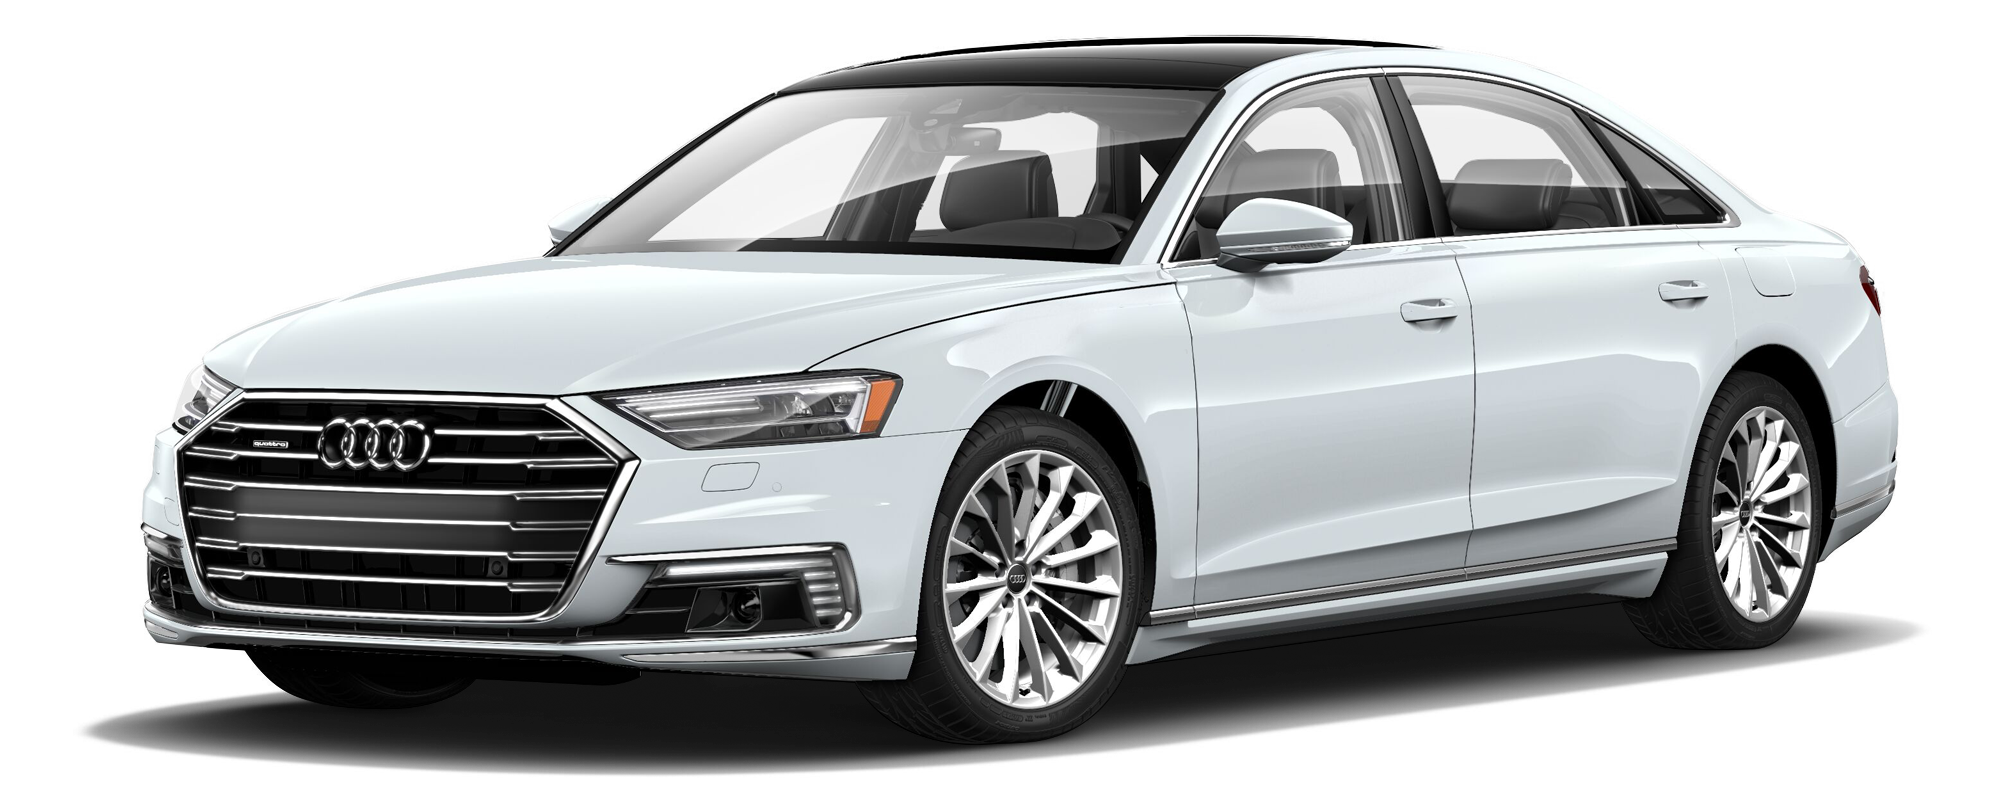 2019 audi a8 incentives specials offers in wilmington nc. Black Bedroom Furniture Sets. Home Design Ideas